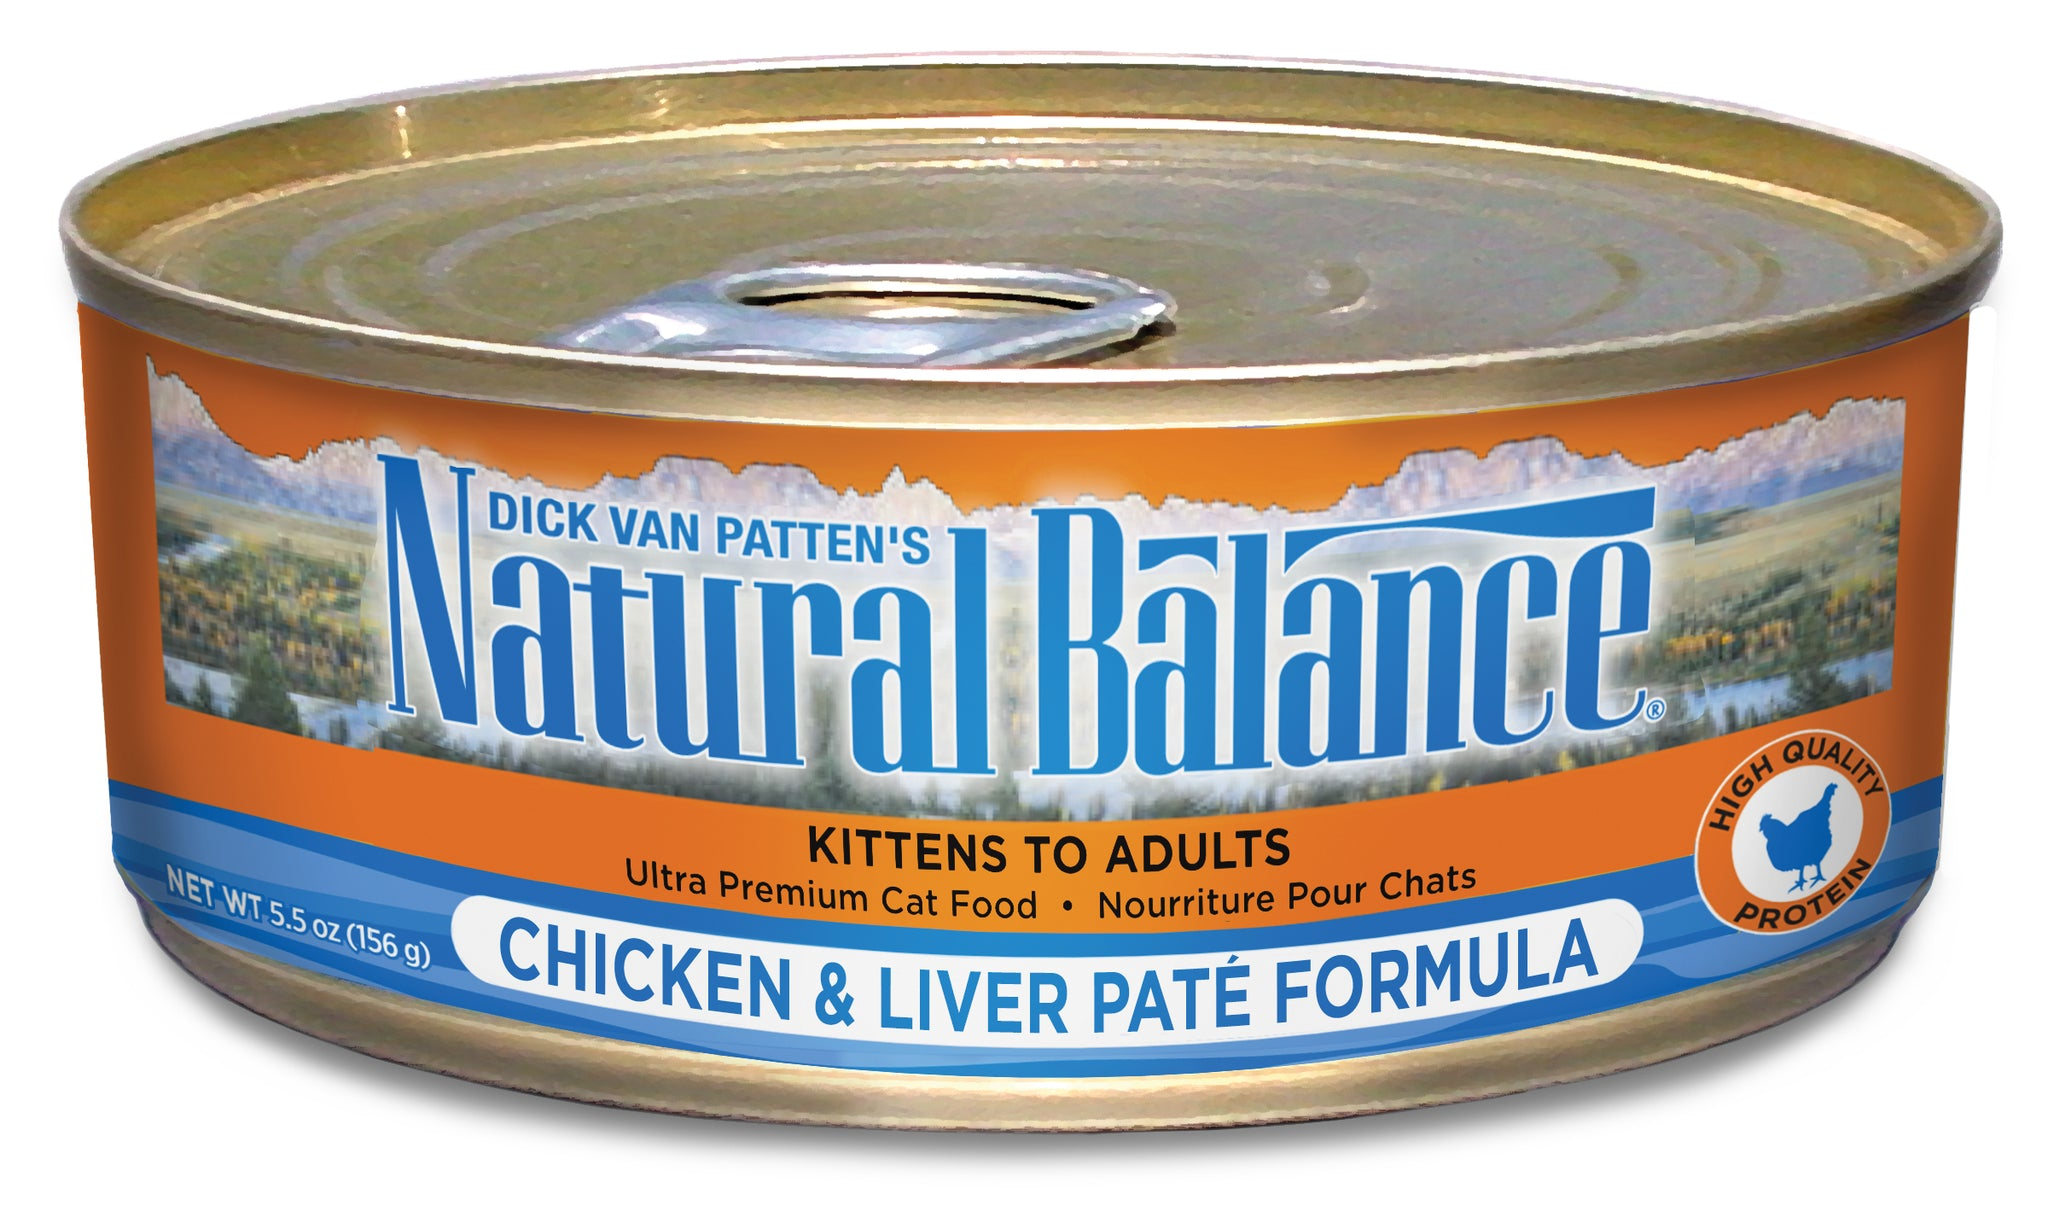 Natural Balance Ultra Premium Chicken & Liver Pate Canned Cat Food